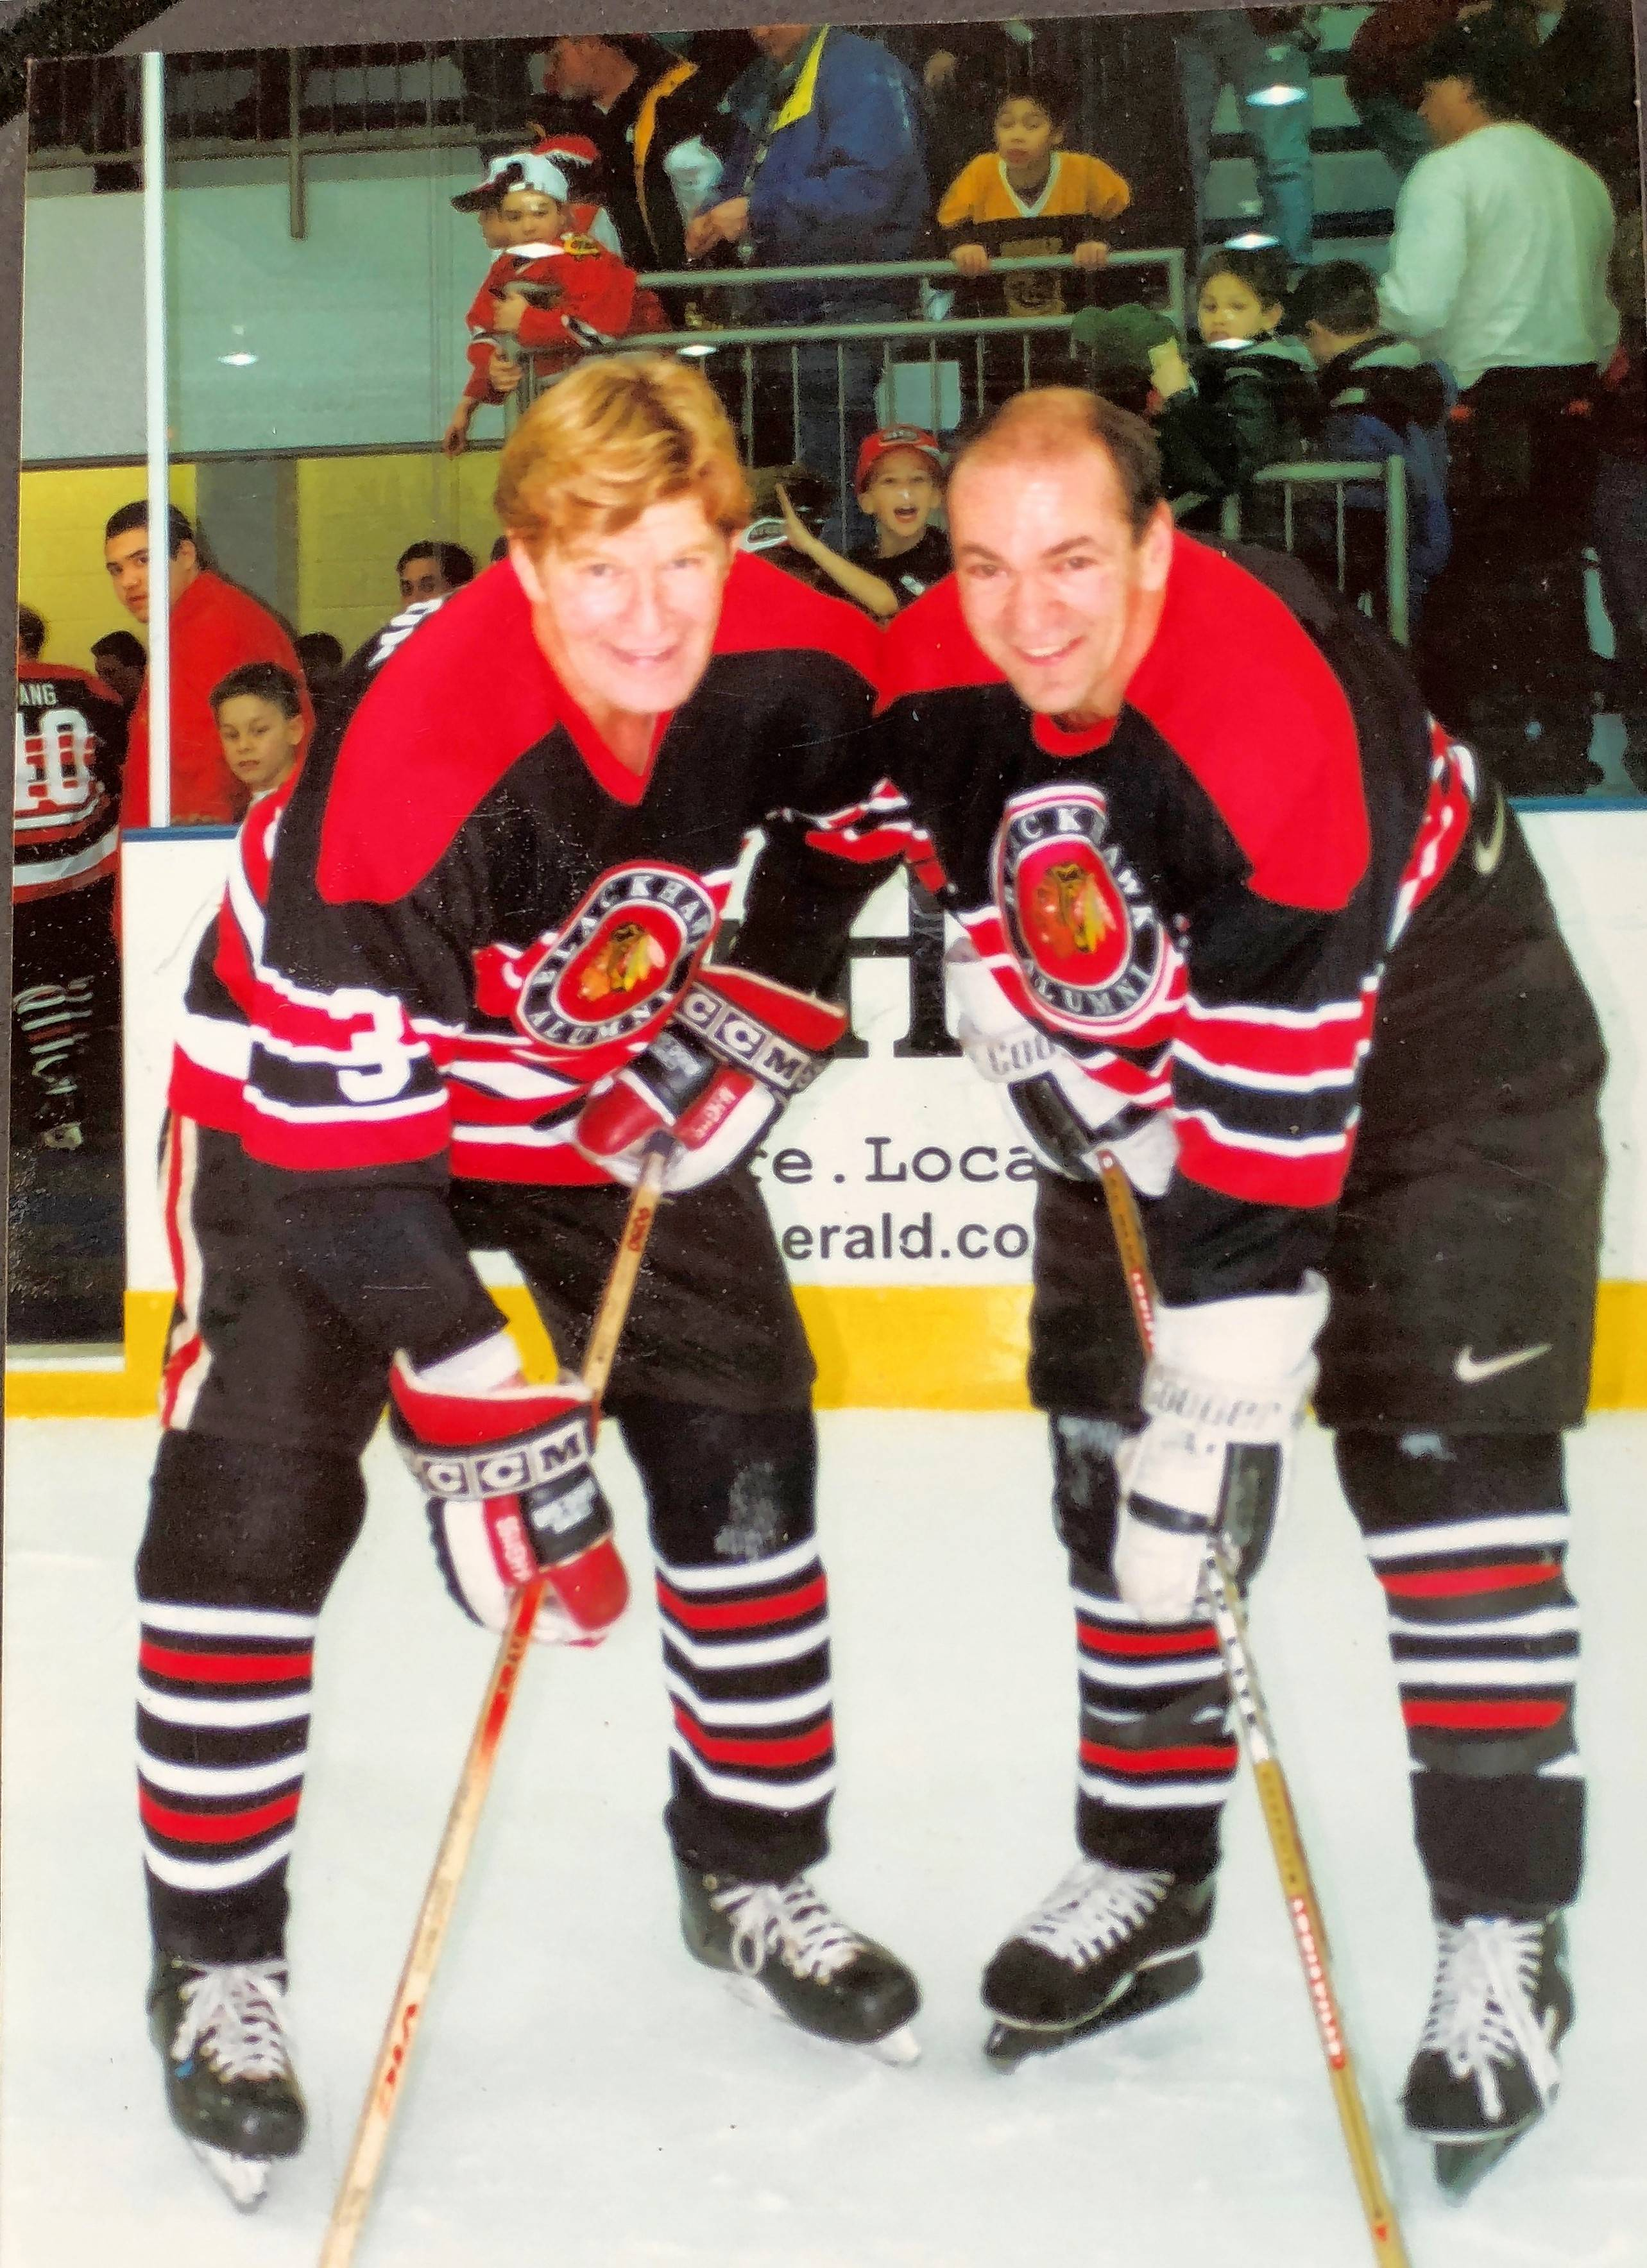 "Steve Richmond, right, seen here with the late Keith Magnuson at a Blackhawks Alumni event in the '90s, is excited to finally have a shot at a championship ring. As the director of player development for the Washington Capitals, Richmond has been on the long, torturous road of making the playoffs 10 out of the last 11 years but never bringing it all home. ""Sometimes you just get beat by a great team. This year, maybe it's our turn."""